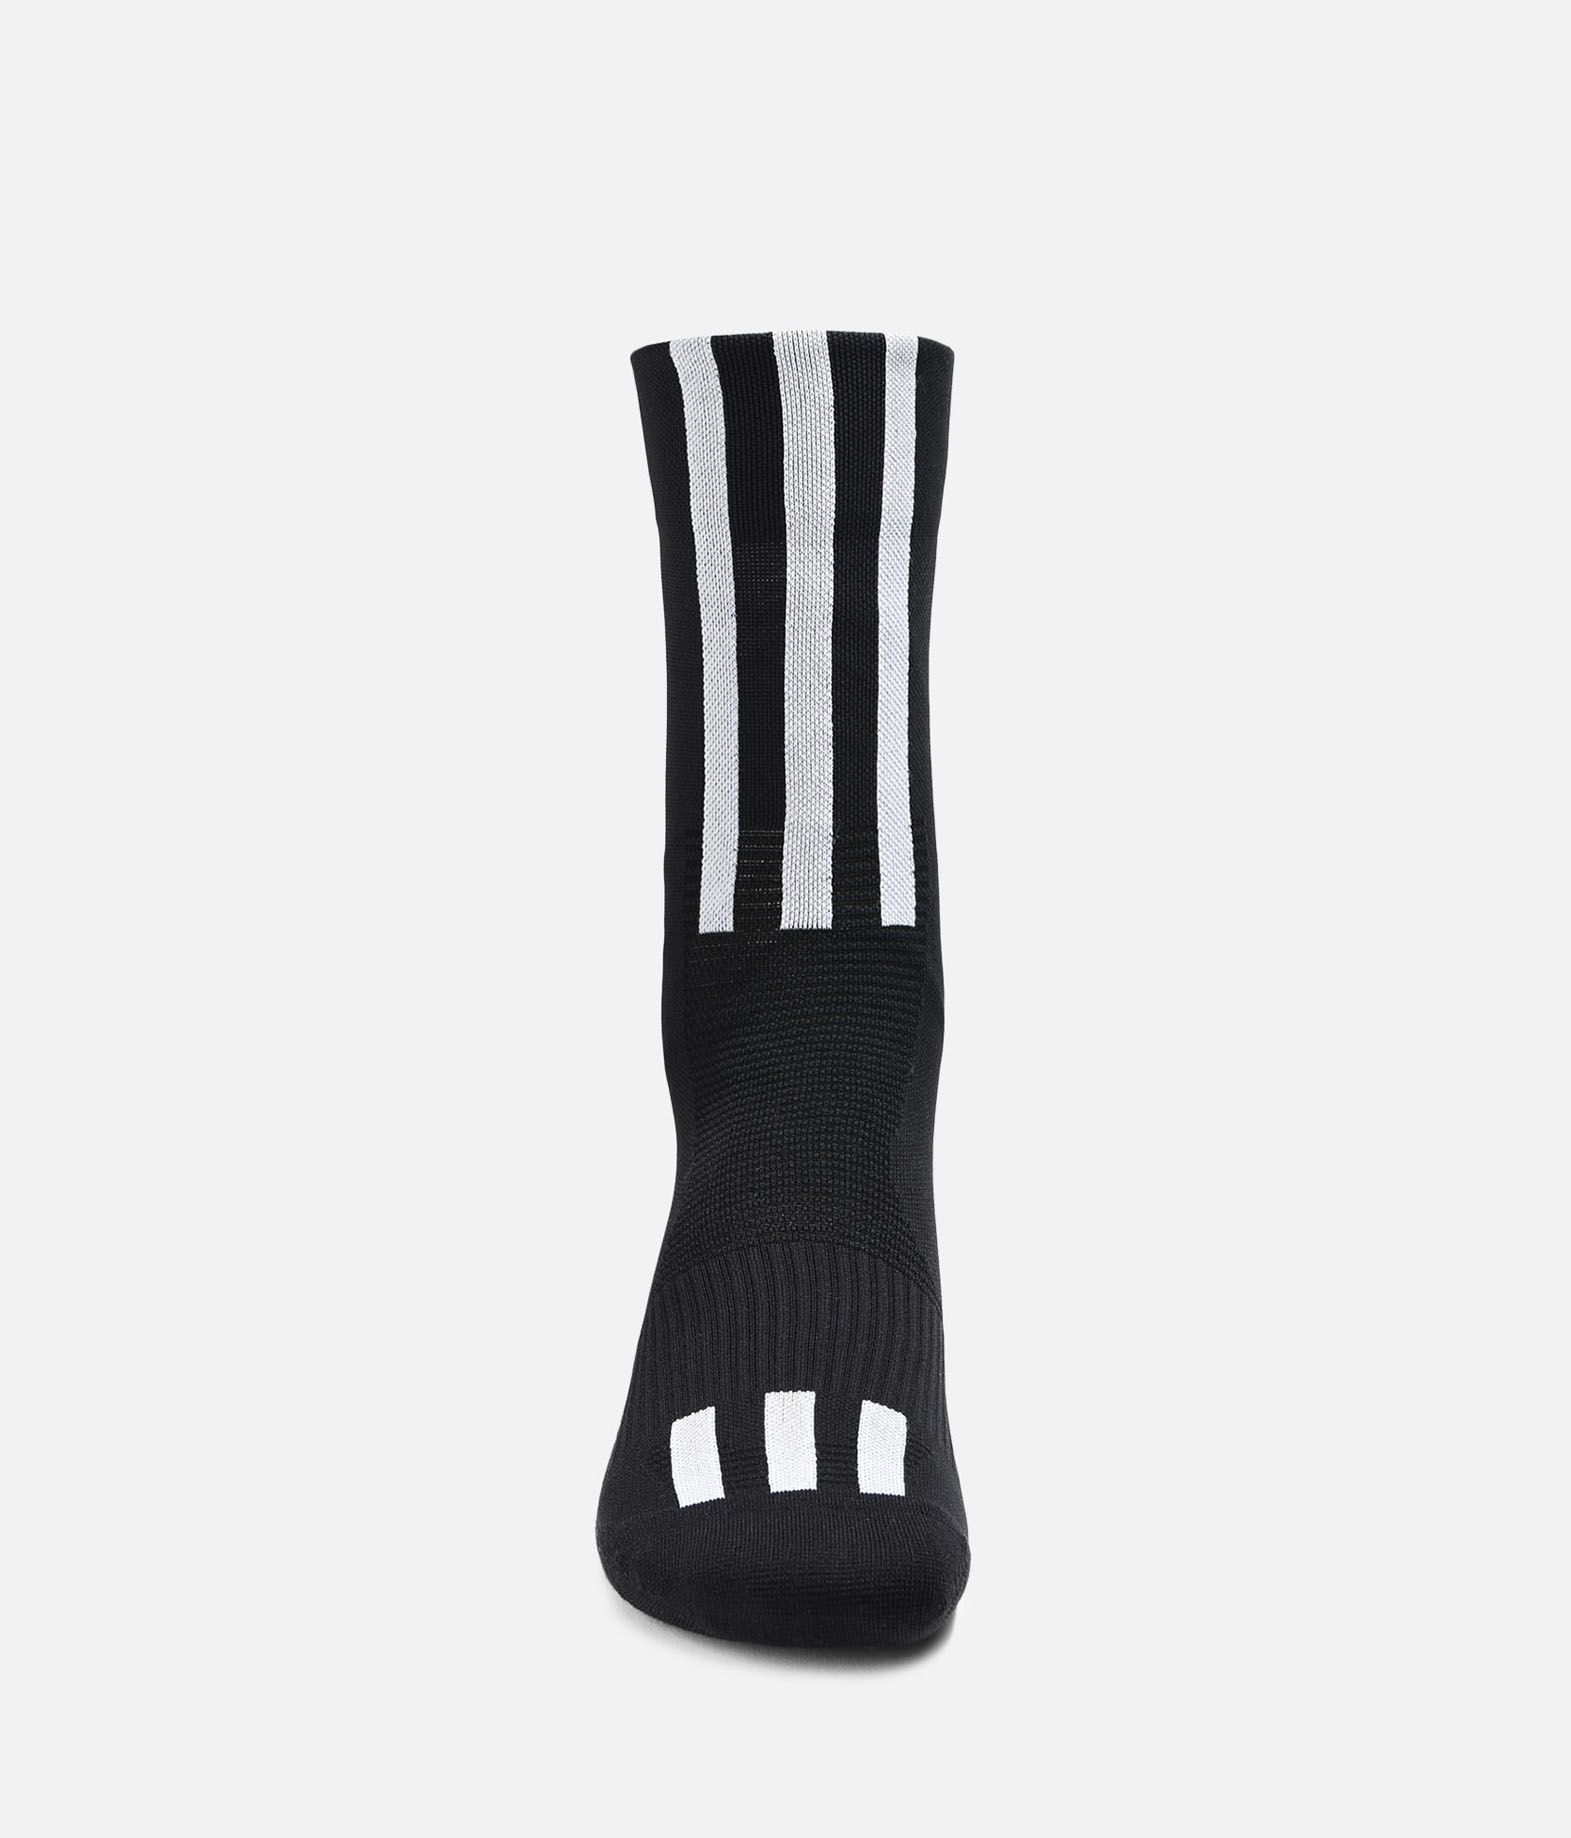 Y-3 Y-3 Tech Socks Socken E r